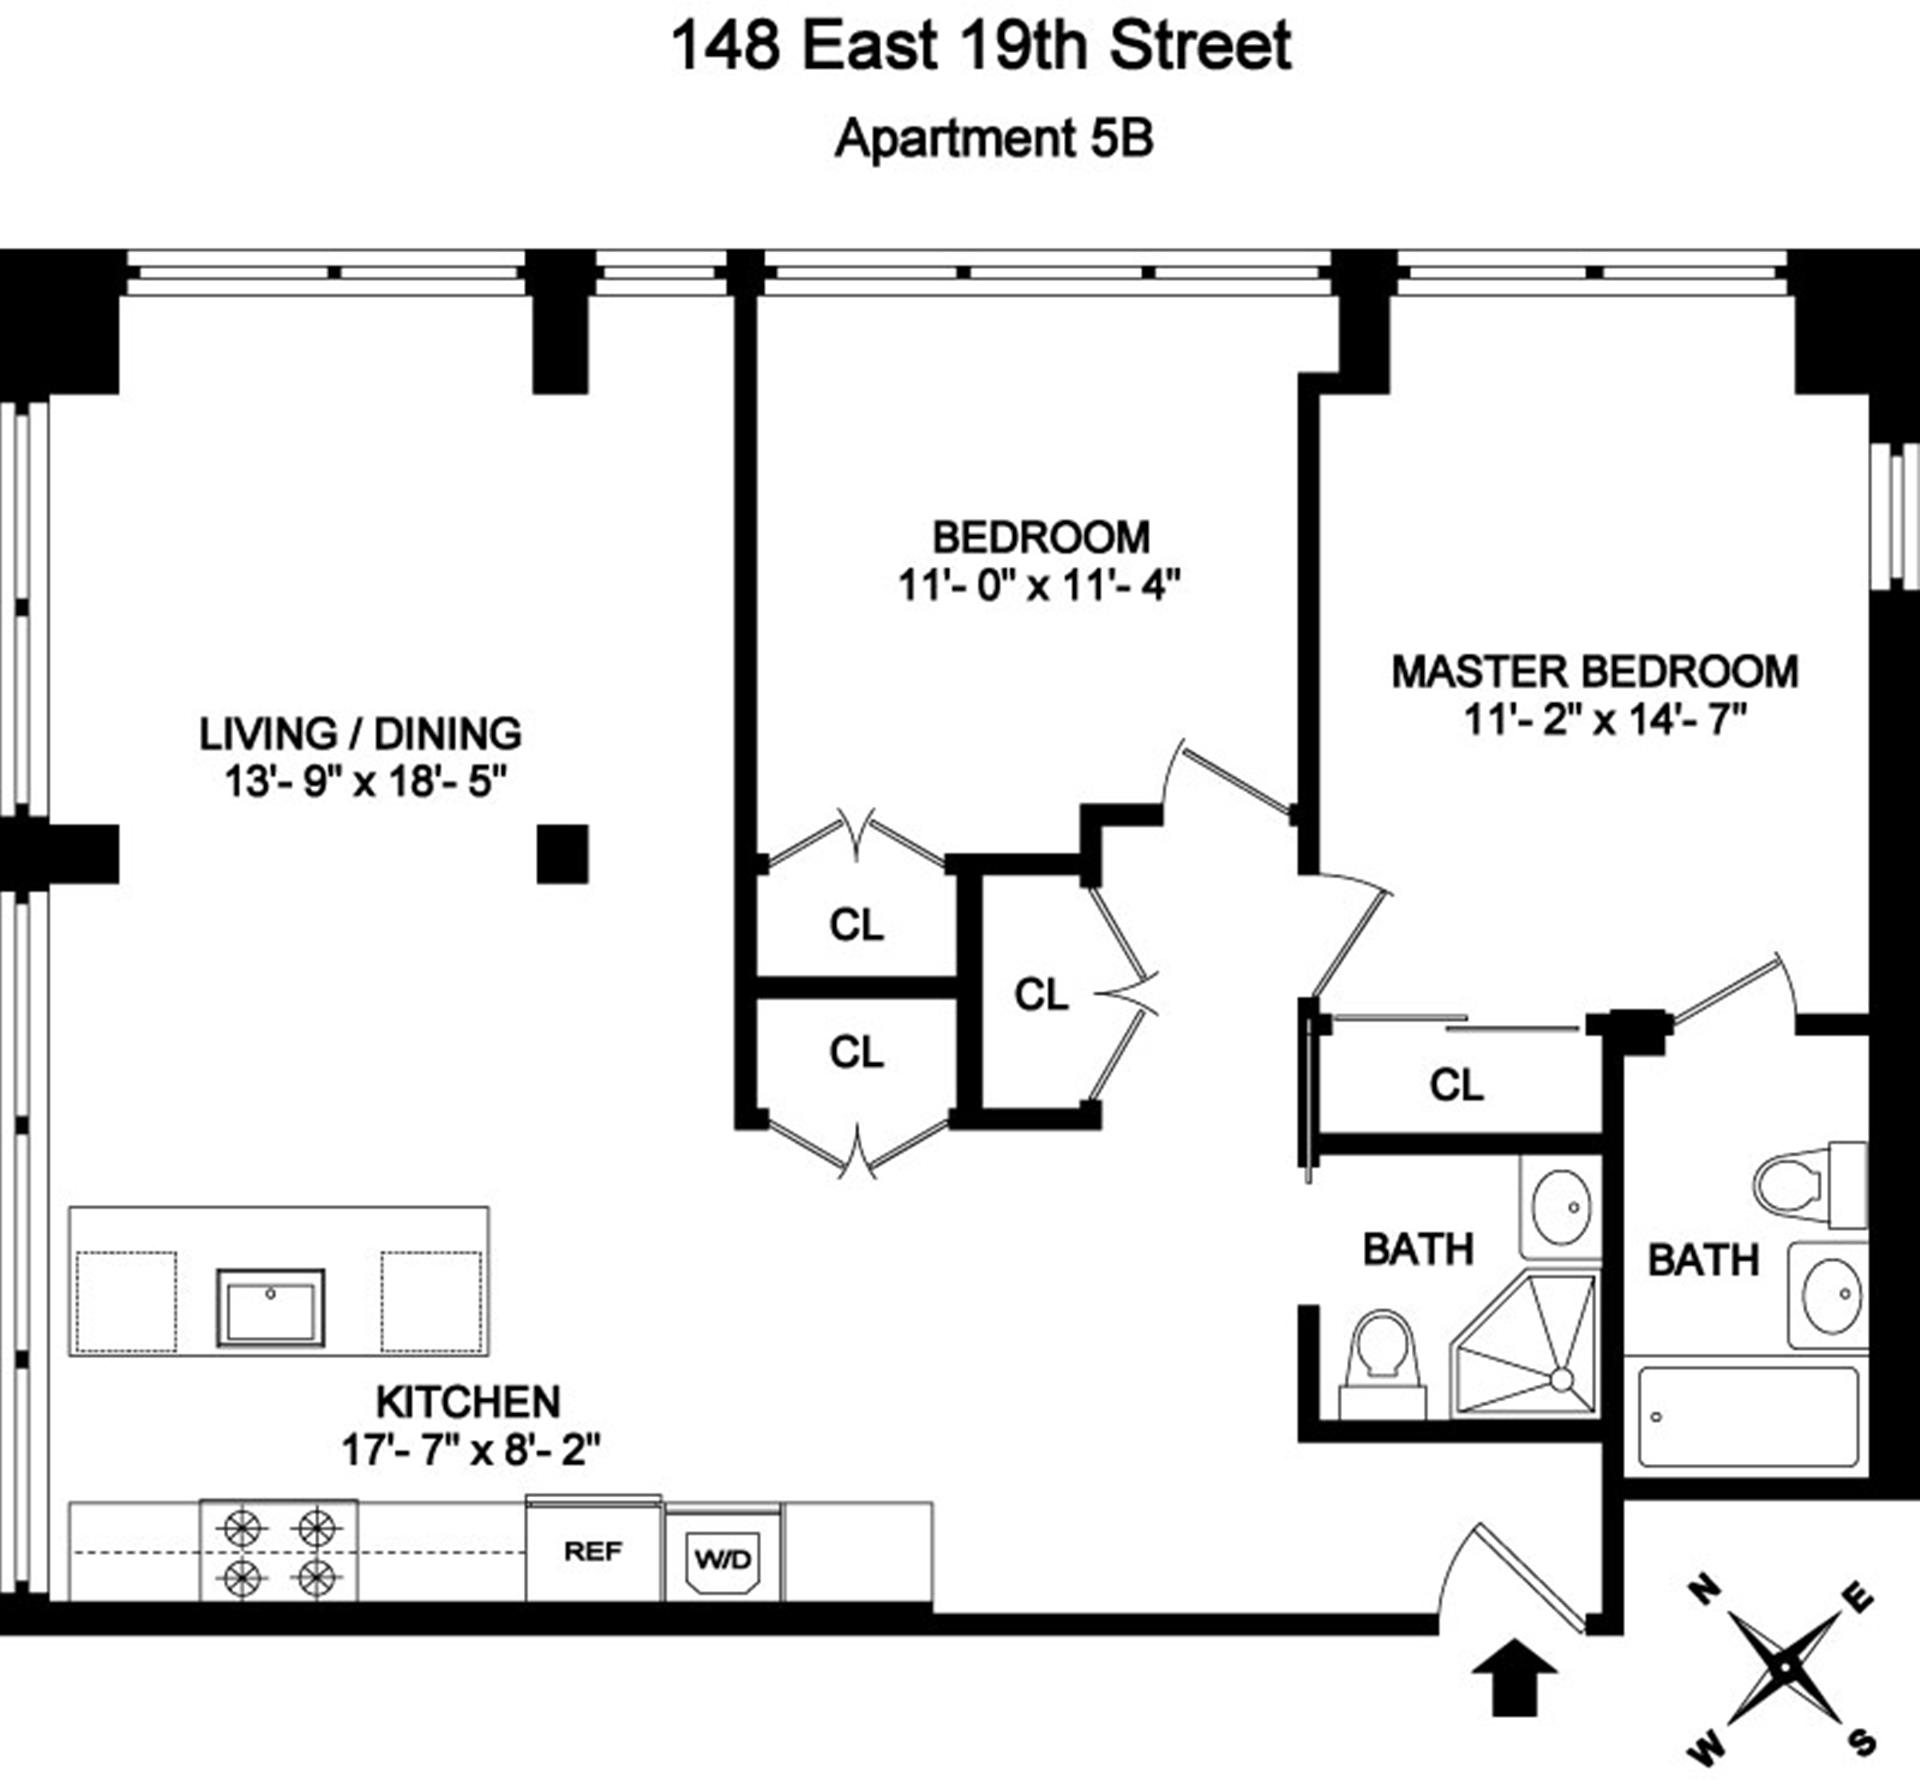 Floor plan of Gramercy 19, 148 East 19th Street, 5B - Gramercy - Union Square, New York